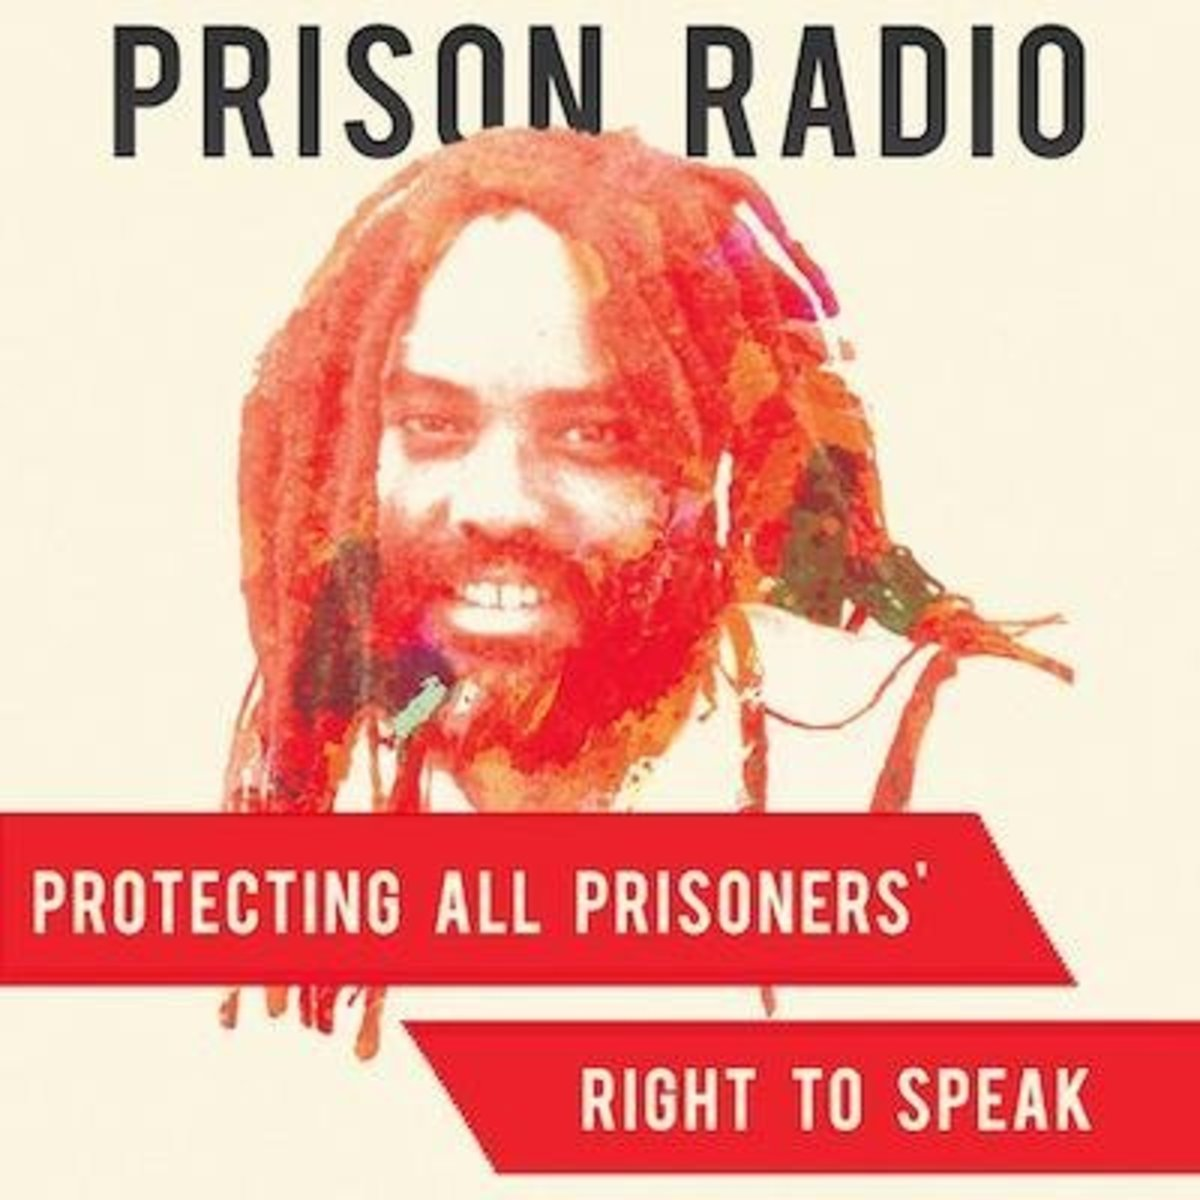 Prison Radio. A Voice for the Voiceless Behind the Fourth Wall